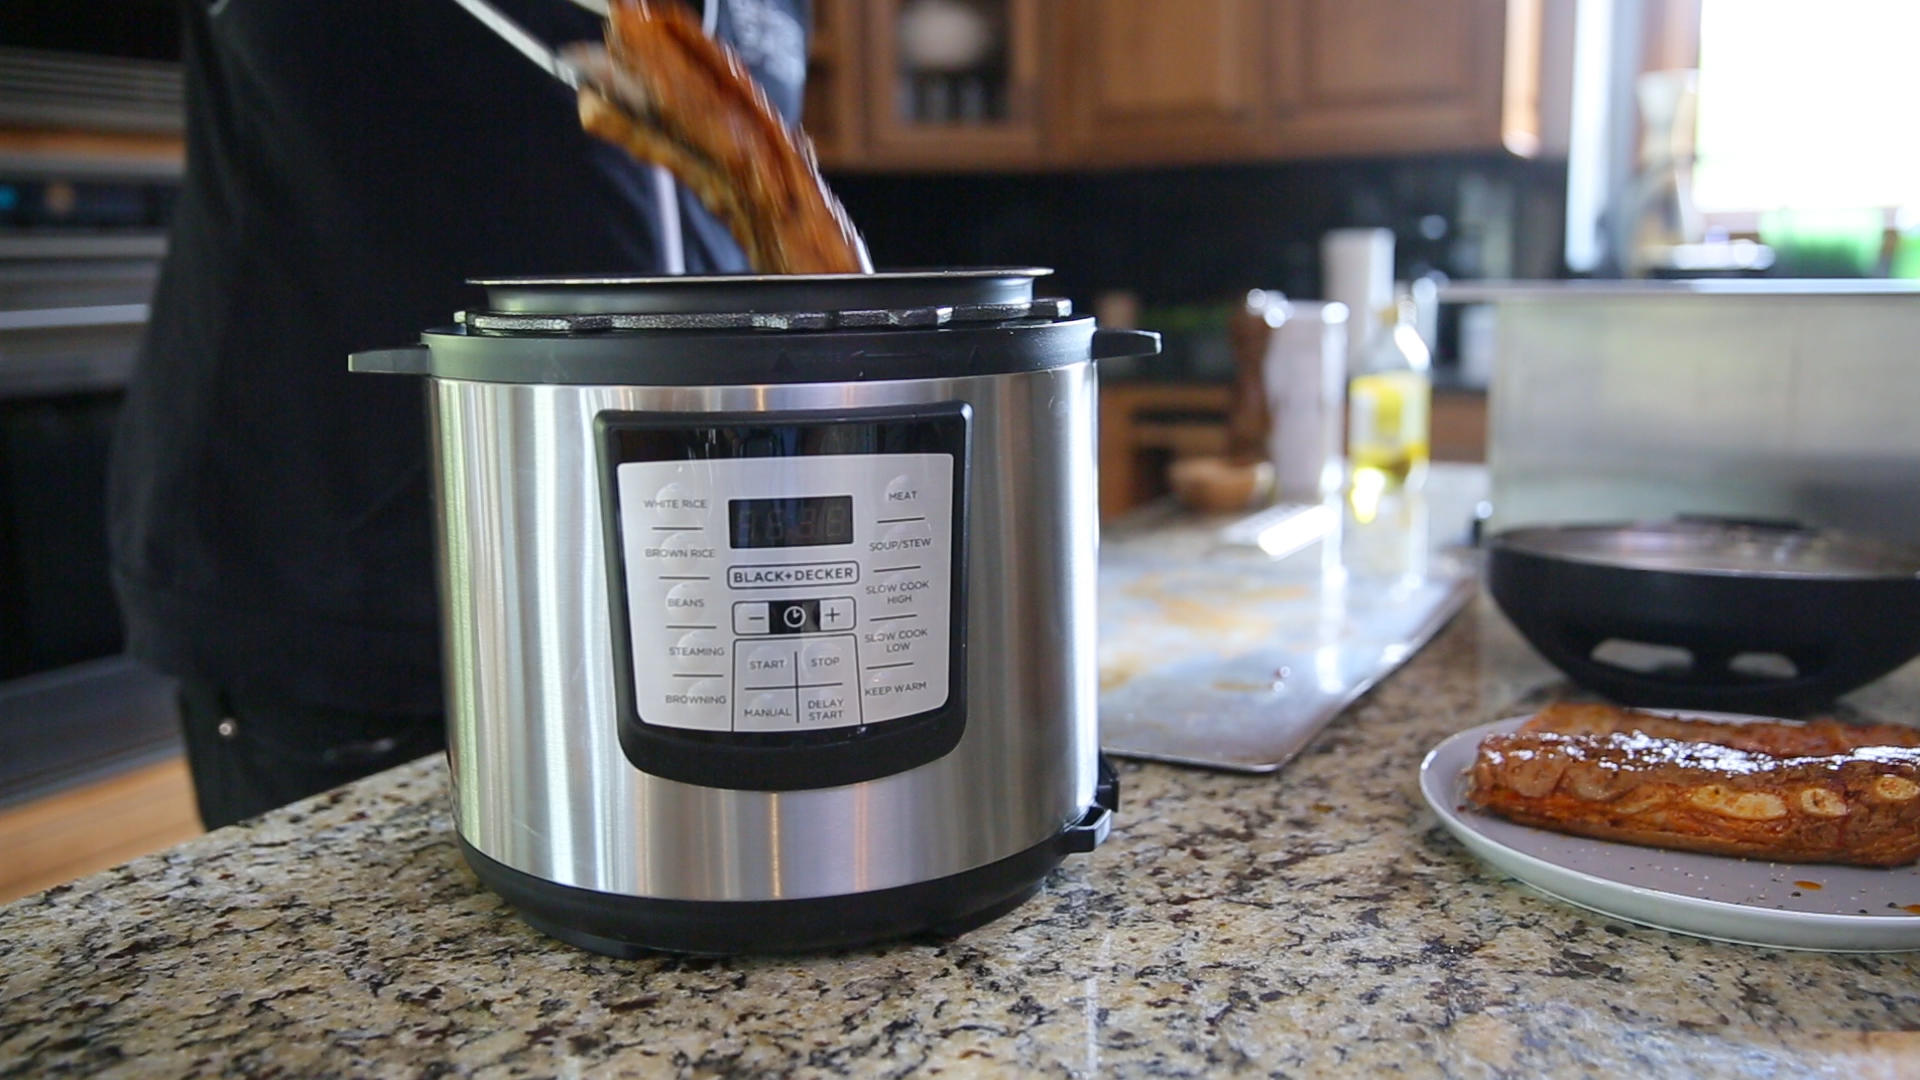 Video: Black & Decker's Instant Pot clone comes close but can't do it all